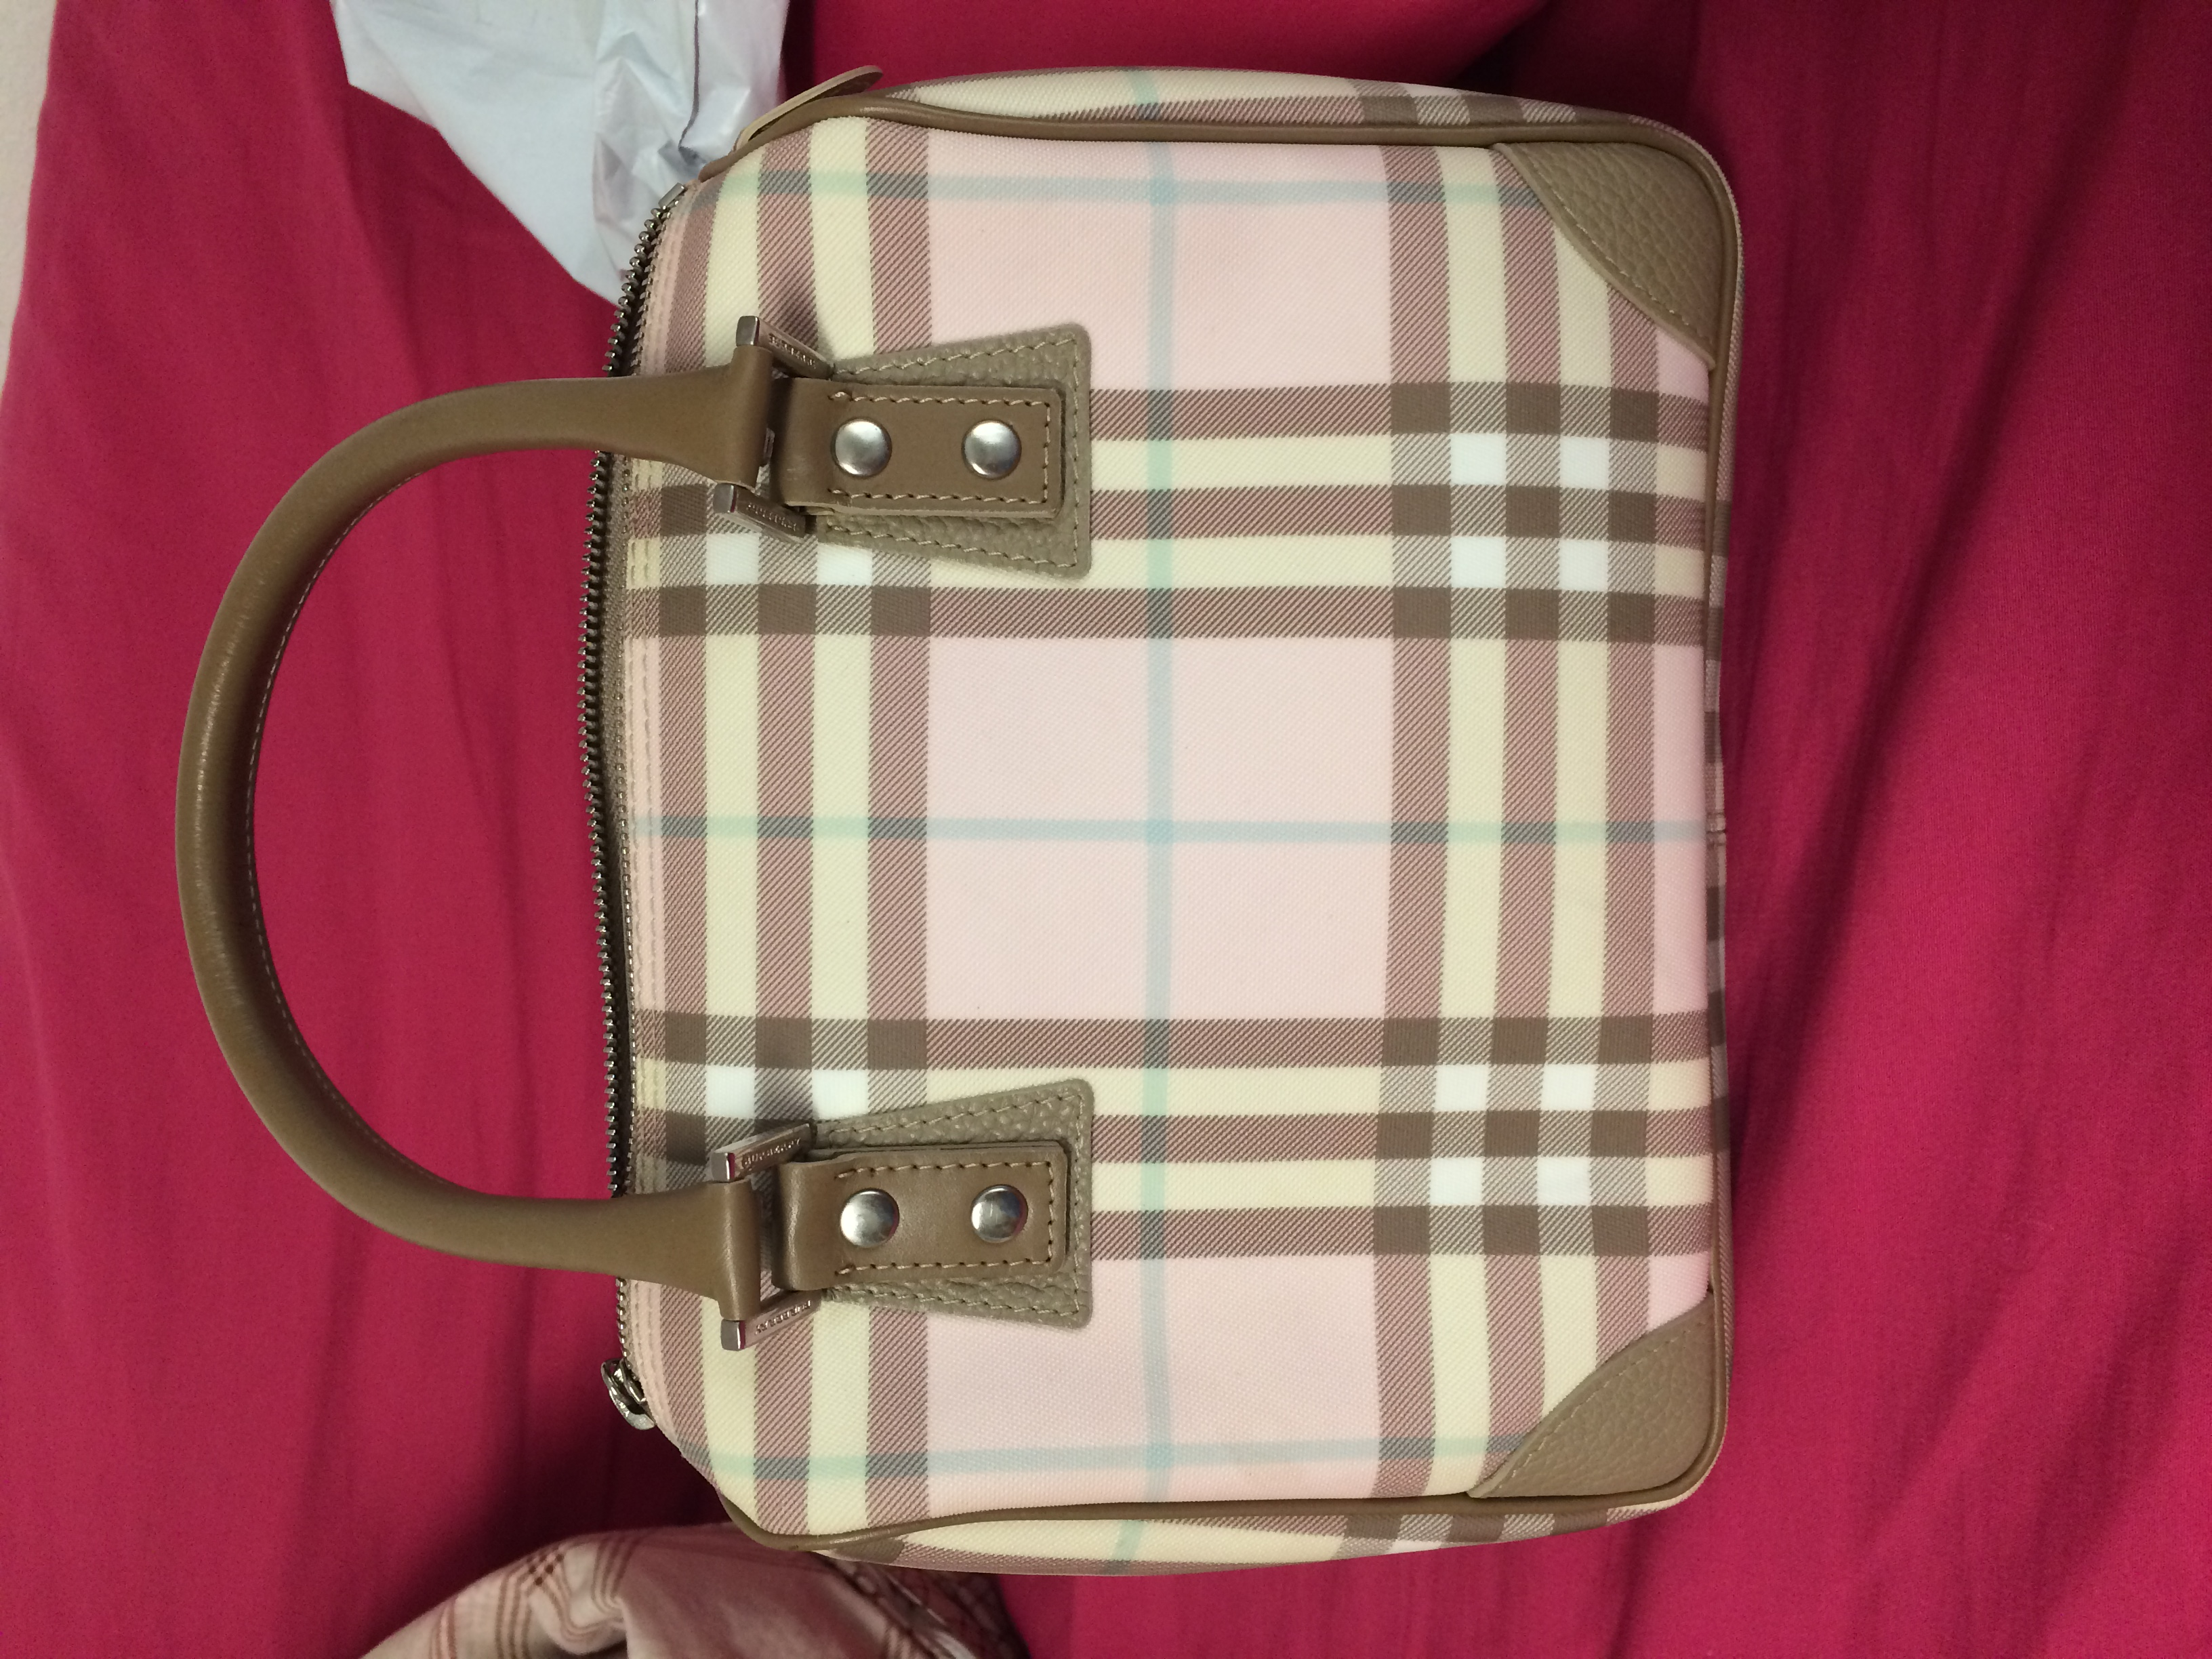 34cf5e850f2 How To Tell If A Burberry Purse Is Real Best Image Ccdbb